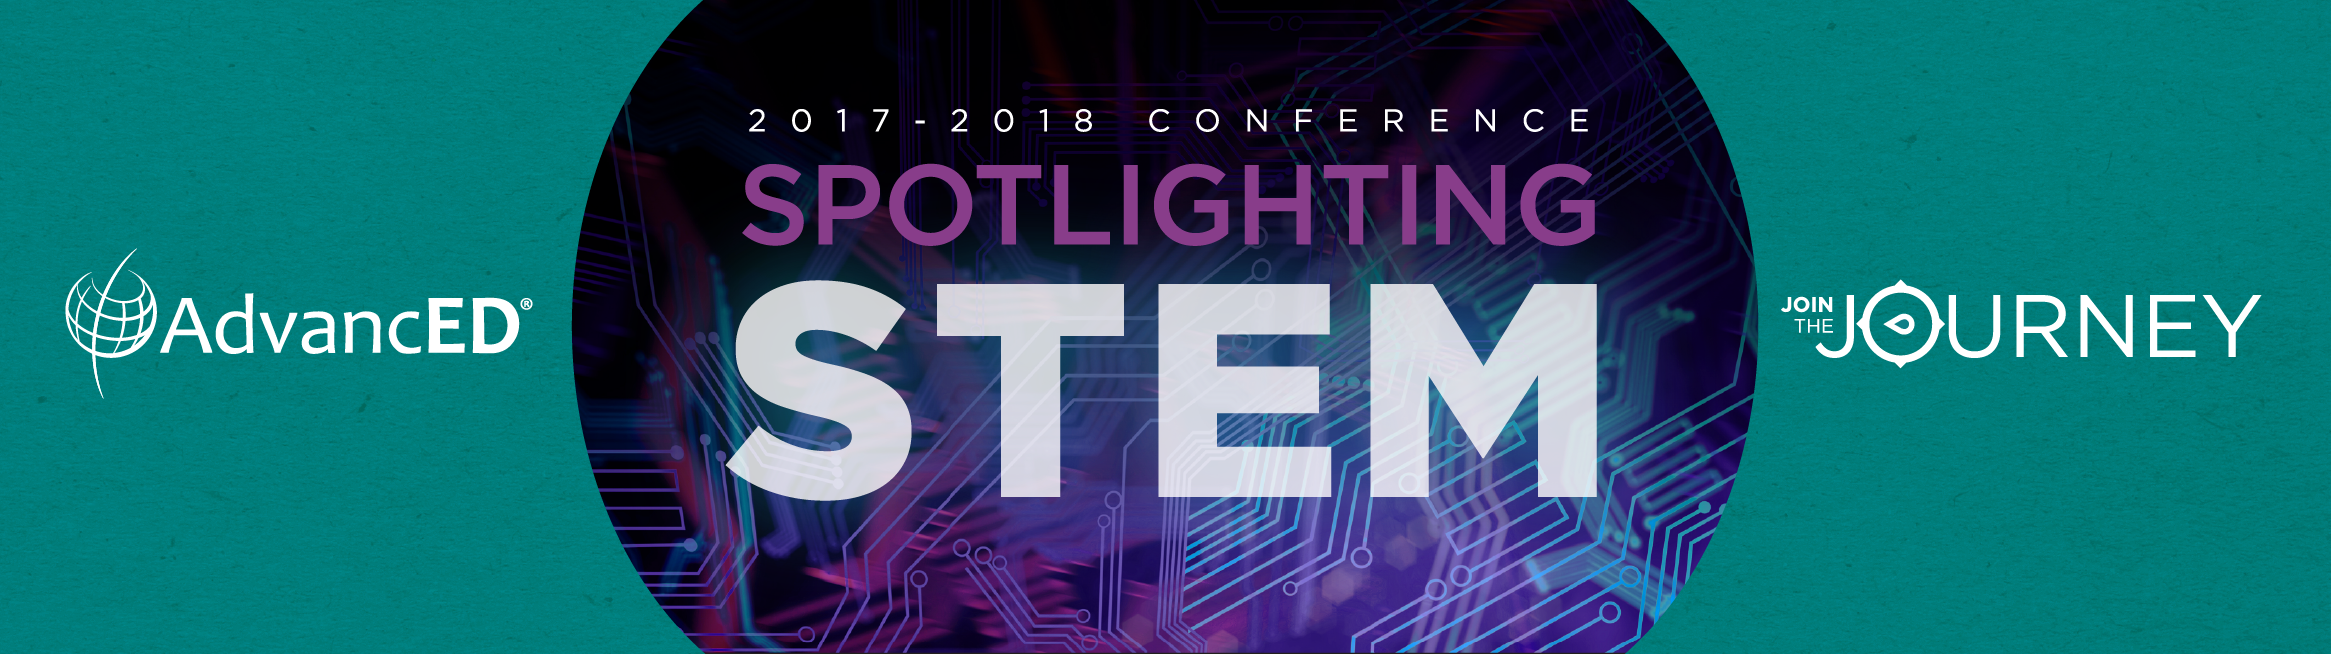 AdvancED Missouri Join the Journey: Spotlighting STEM Conference